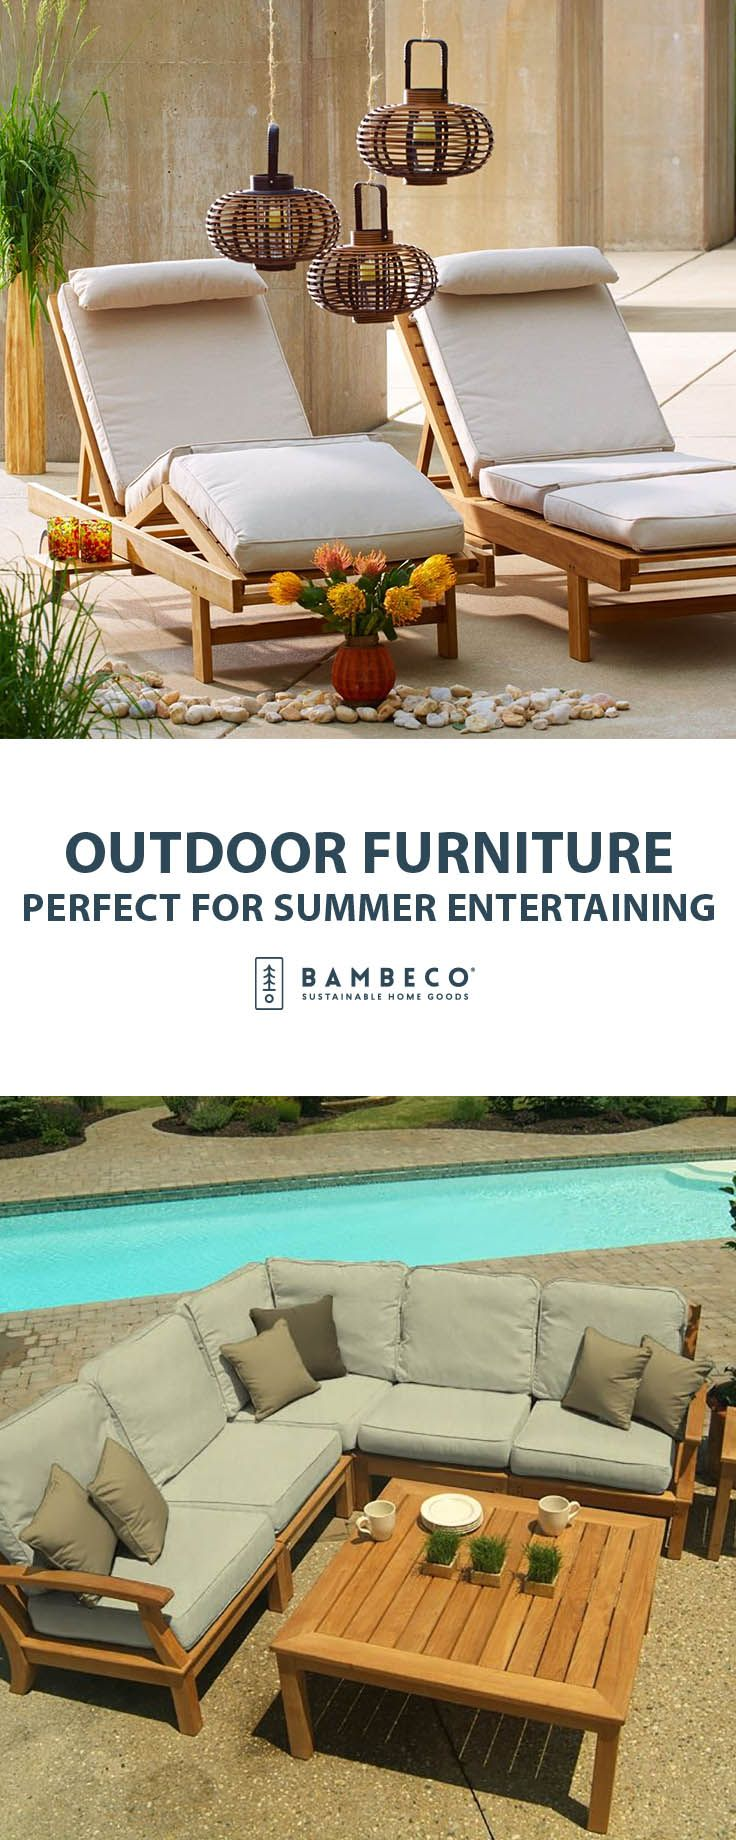 Add casual and cool eco-flair to your patio and yard with sustainable,  eco-friendly outdoor furniture from Bambeco.